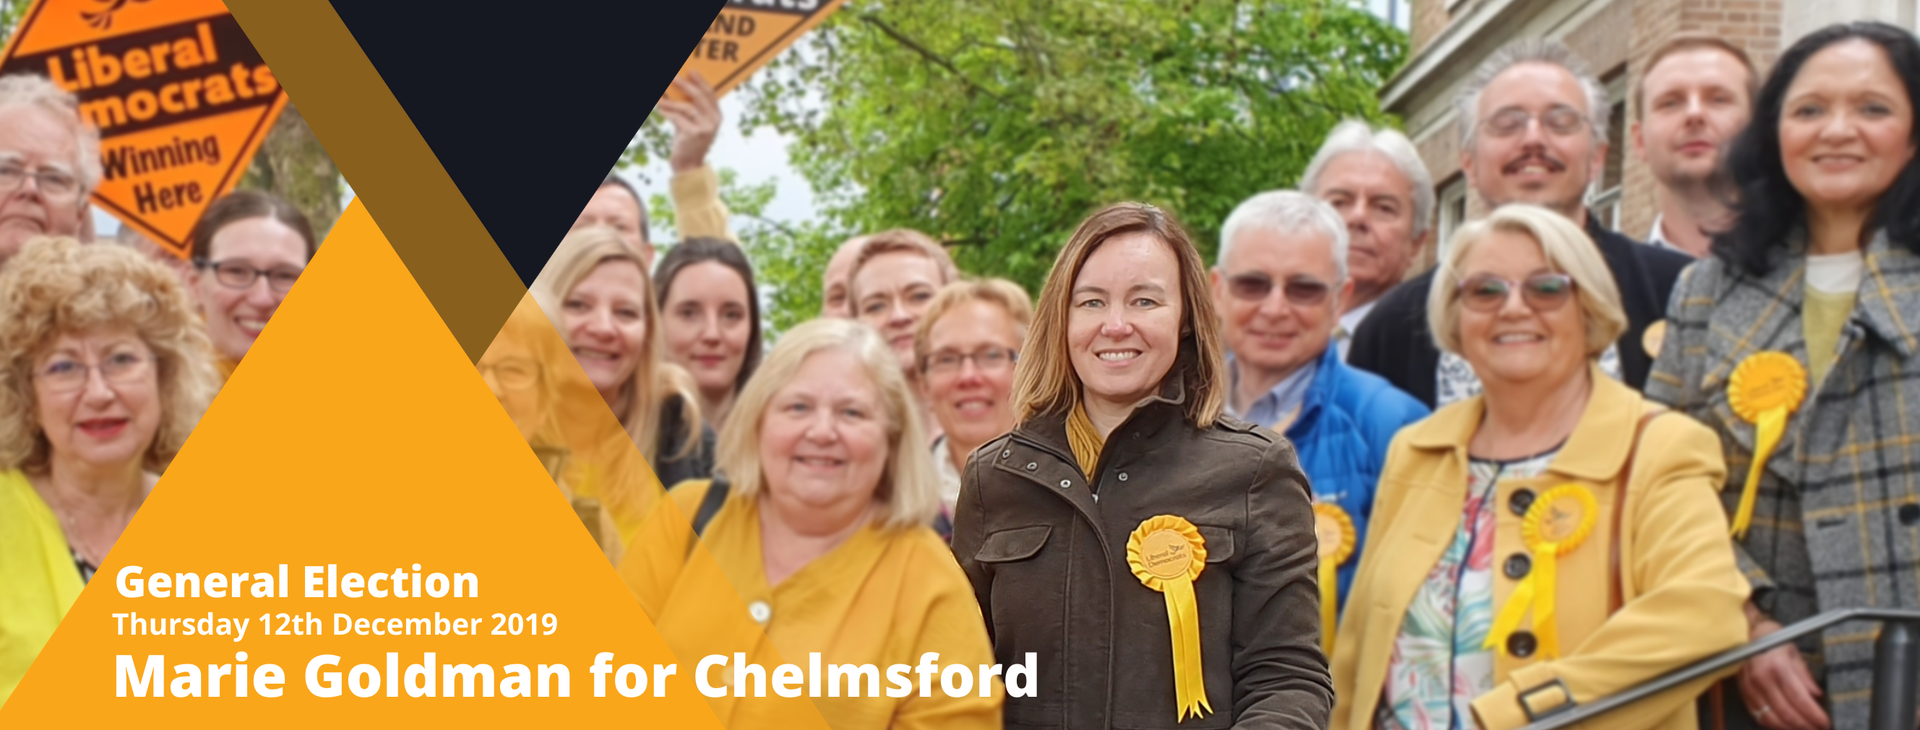 Marie Goldman and the Chelmsford Liberal Democrats